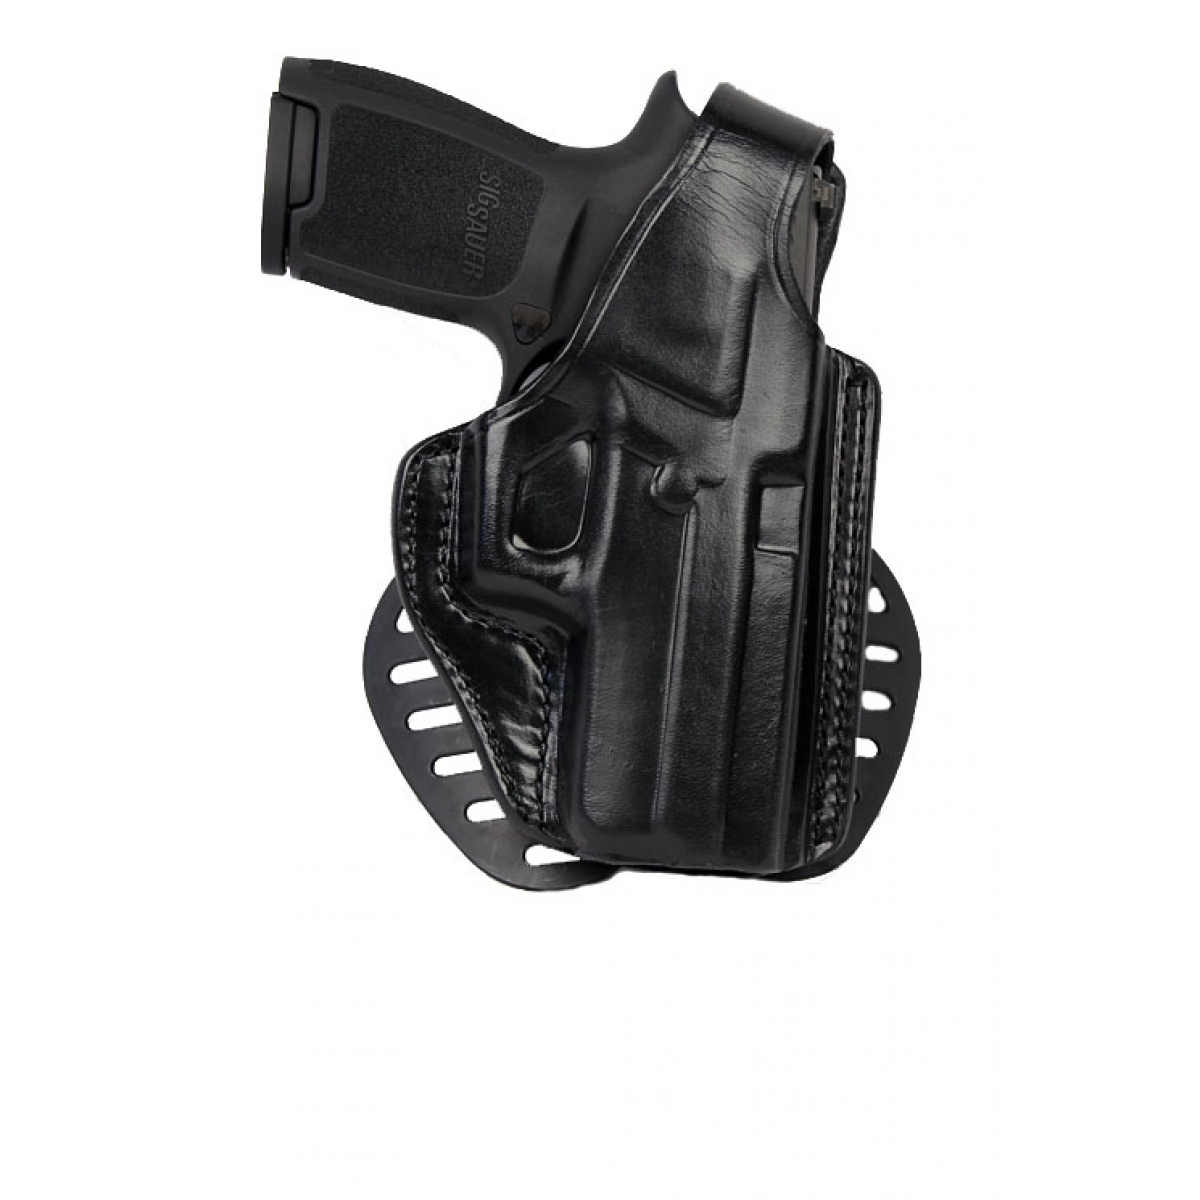 Gould & Goodrich Paddle Holster, Right Hand, BLACK - GLOCK 17,22,31